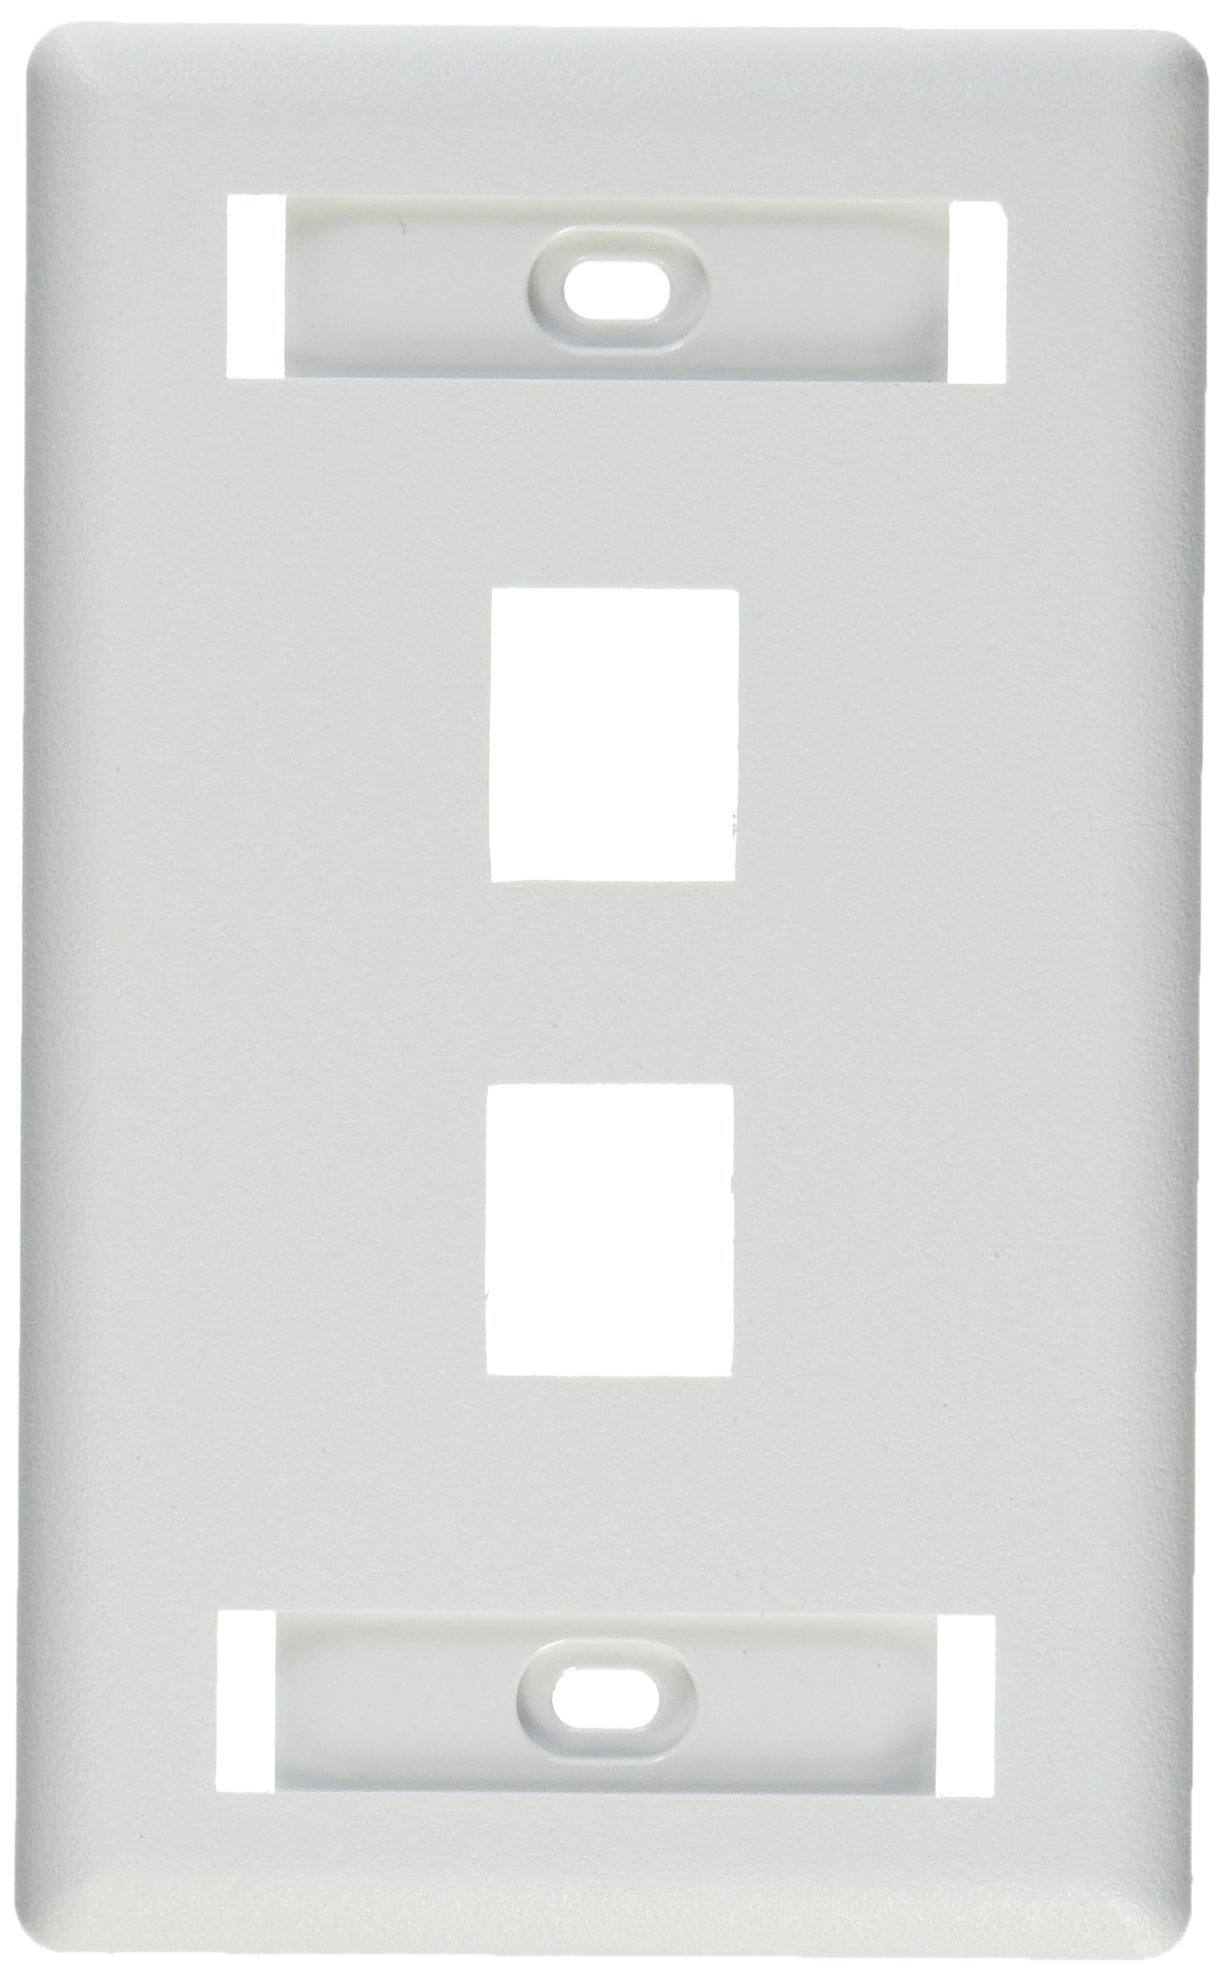 Hubbell IFP12W Flush Phone/Data/Multimedia Wall Plate, 1 Gang, 2 Port, White (Pack of 25)